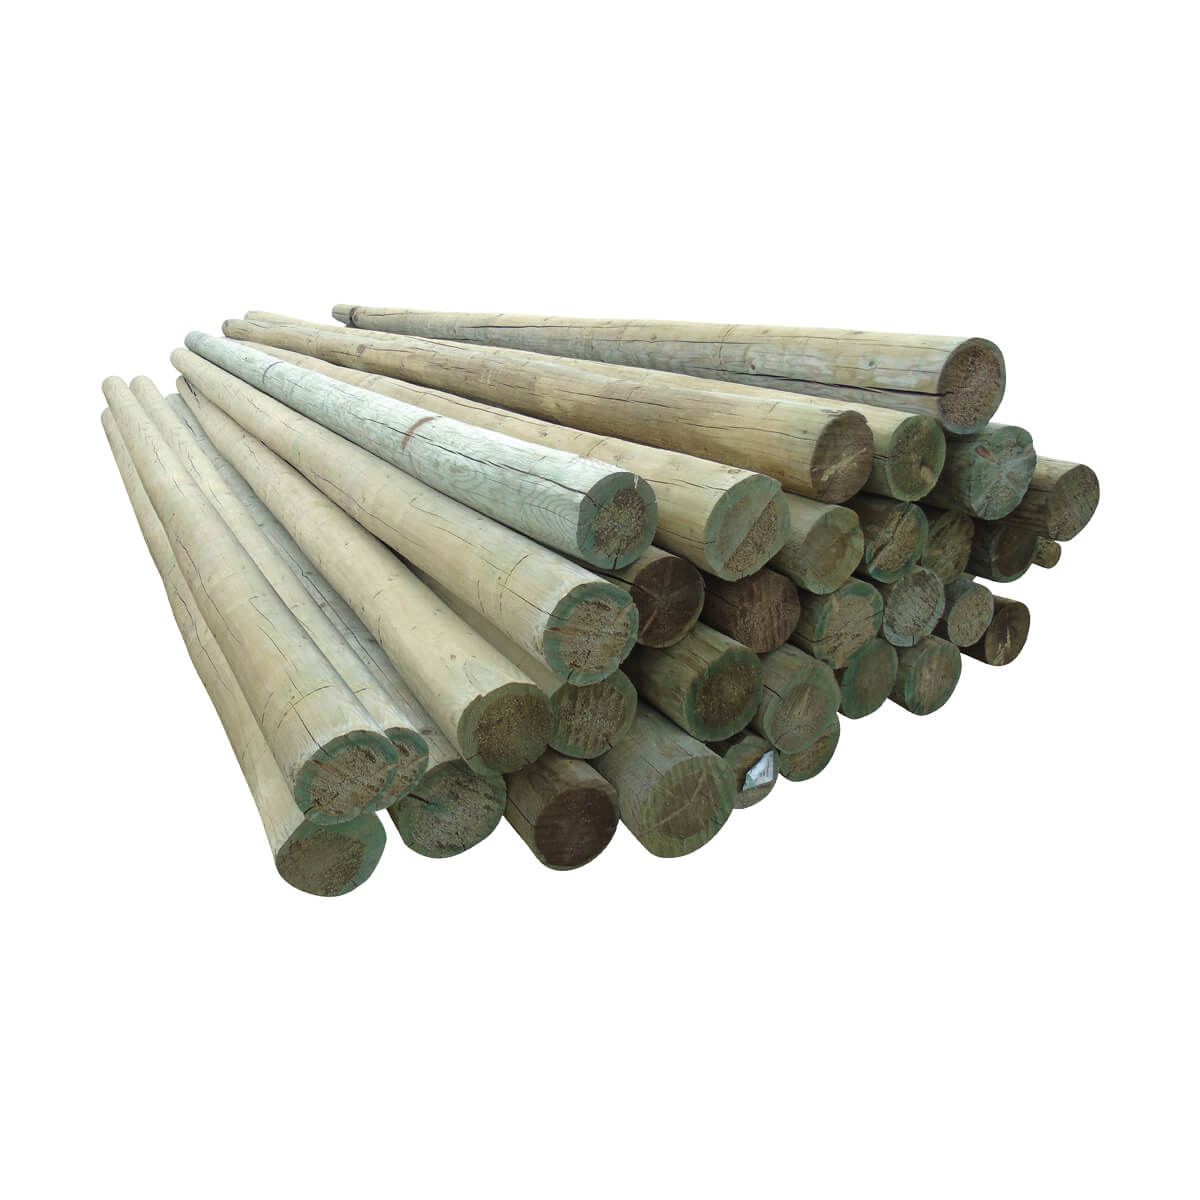 Peeled Fence Poles - Blunt - 6-in x 20-ft